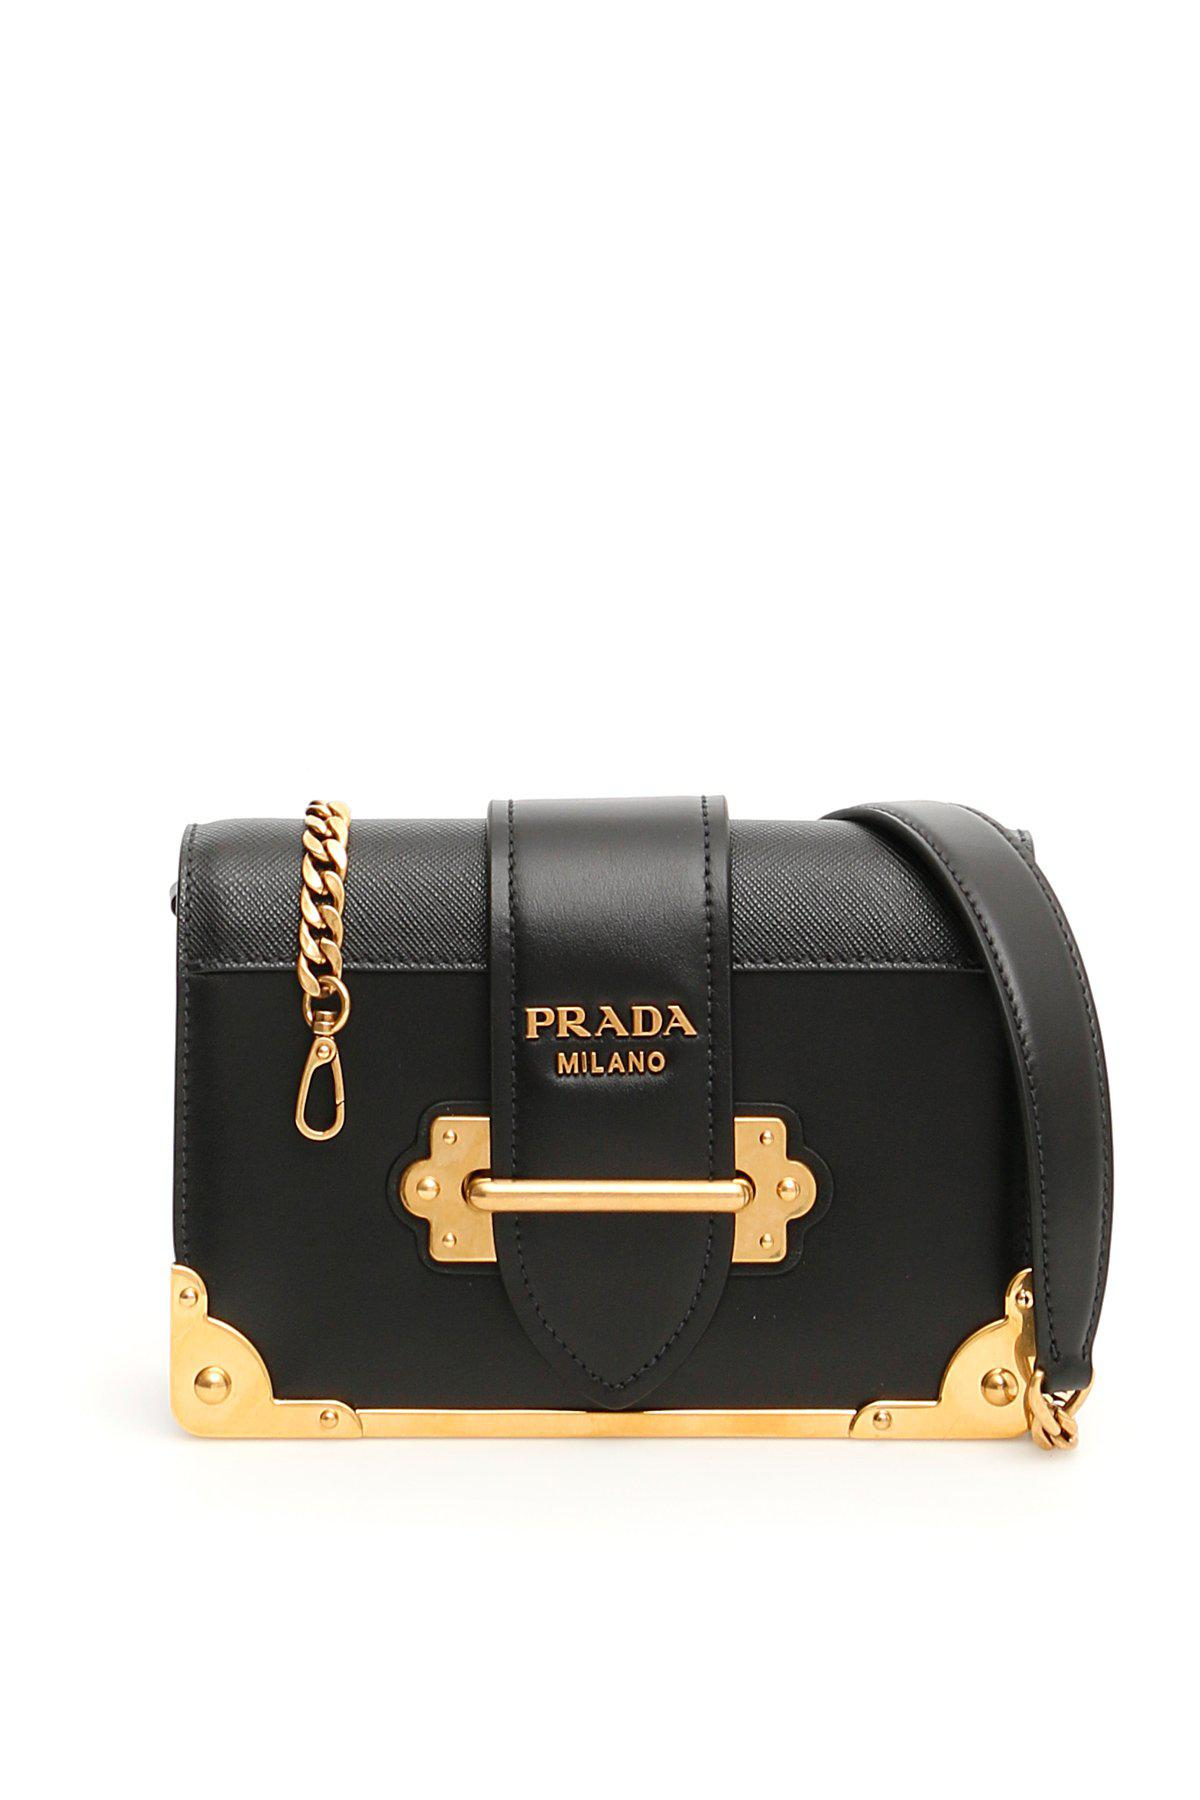 14ba2ad5b7ec Lyst - Prada Cahier Shoulder Bag in Black